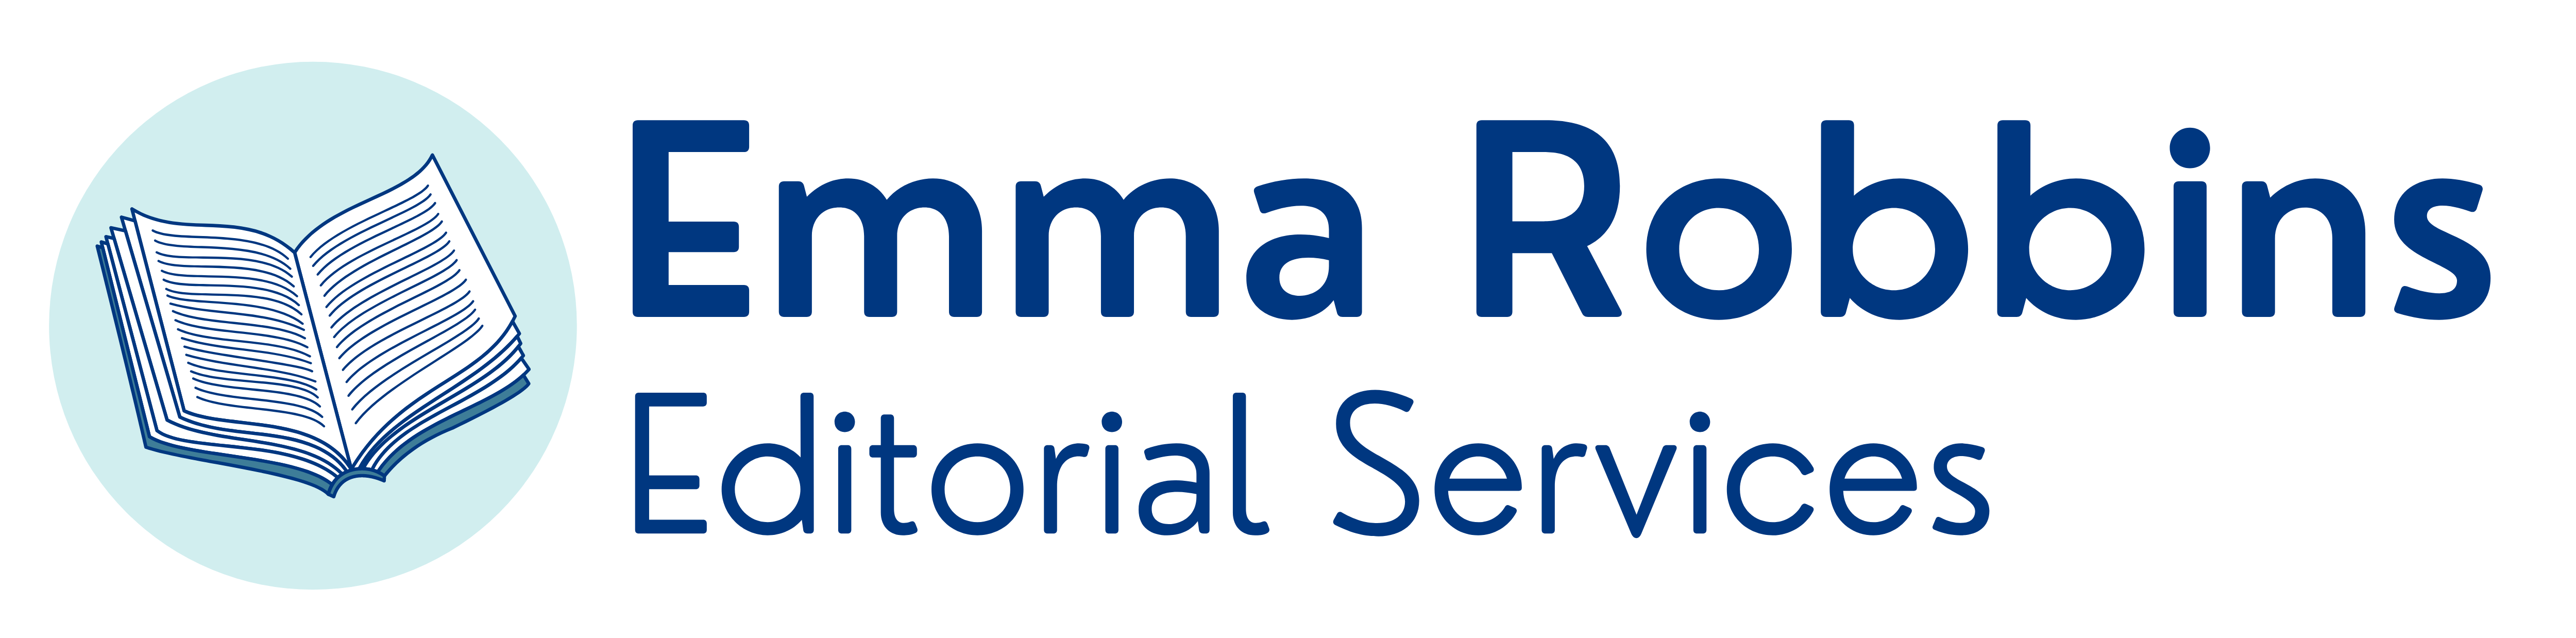 Emma Robbins Editorial Services